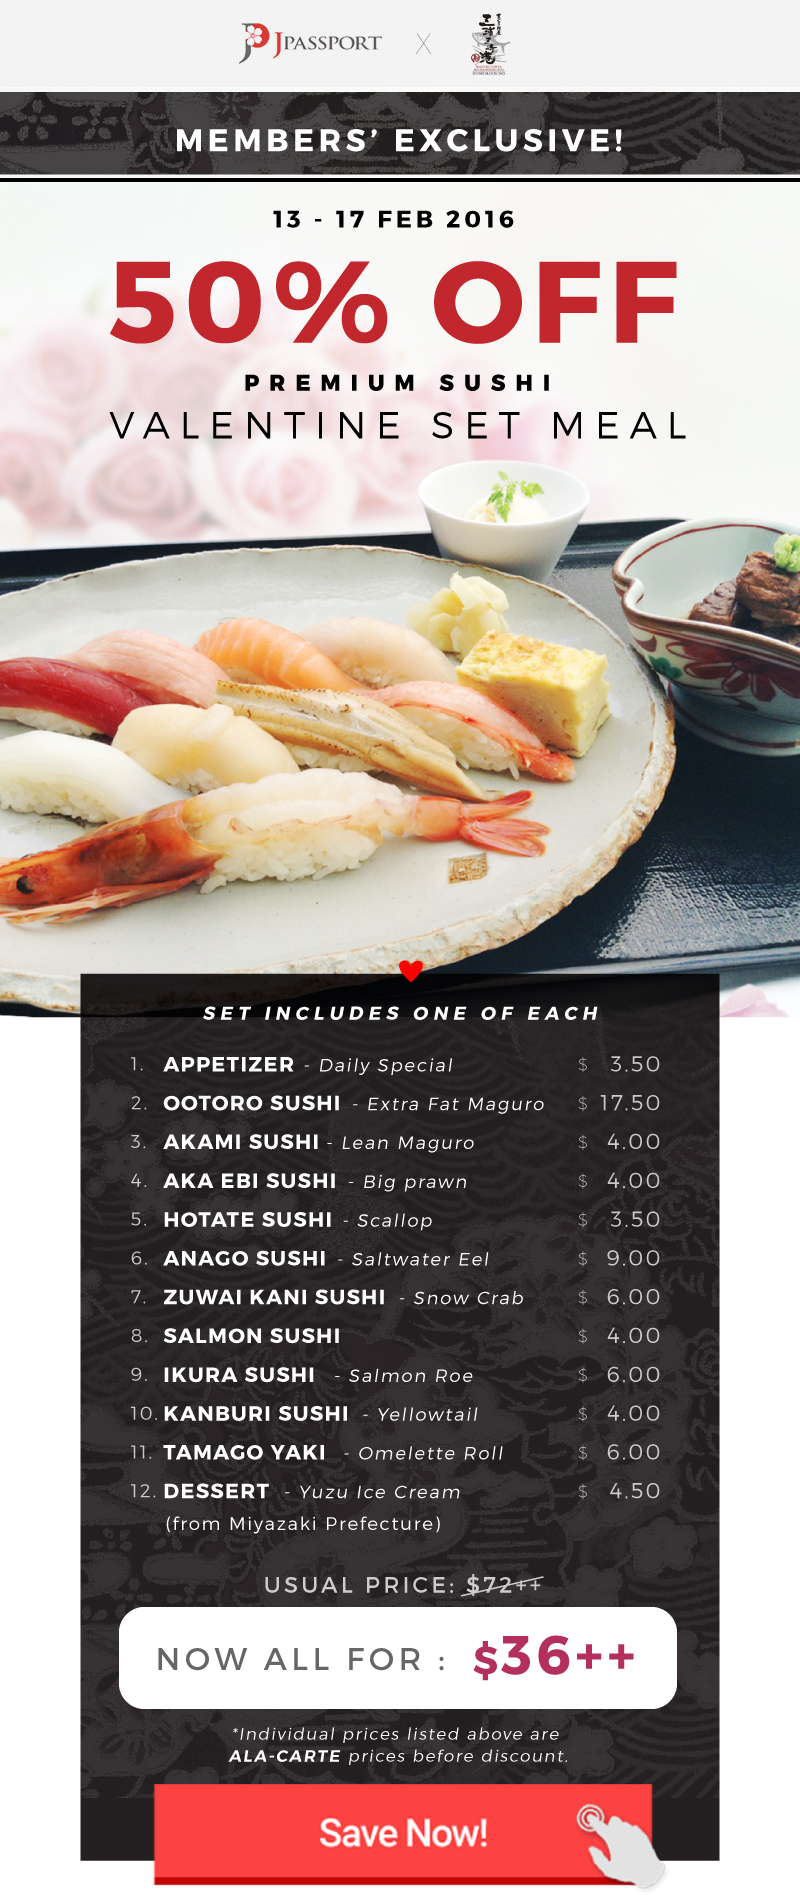 50% OFF! <3 Premium Sushi Set Meal for you and your special